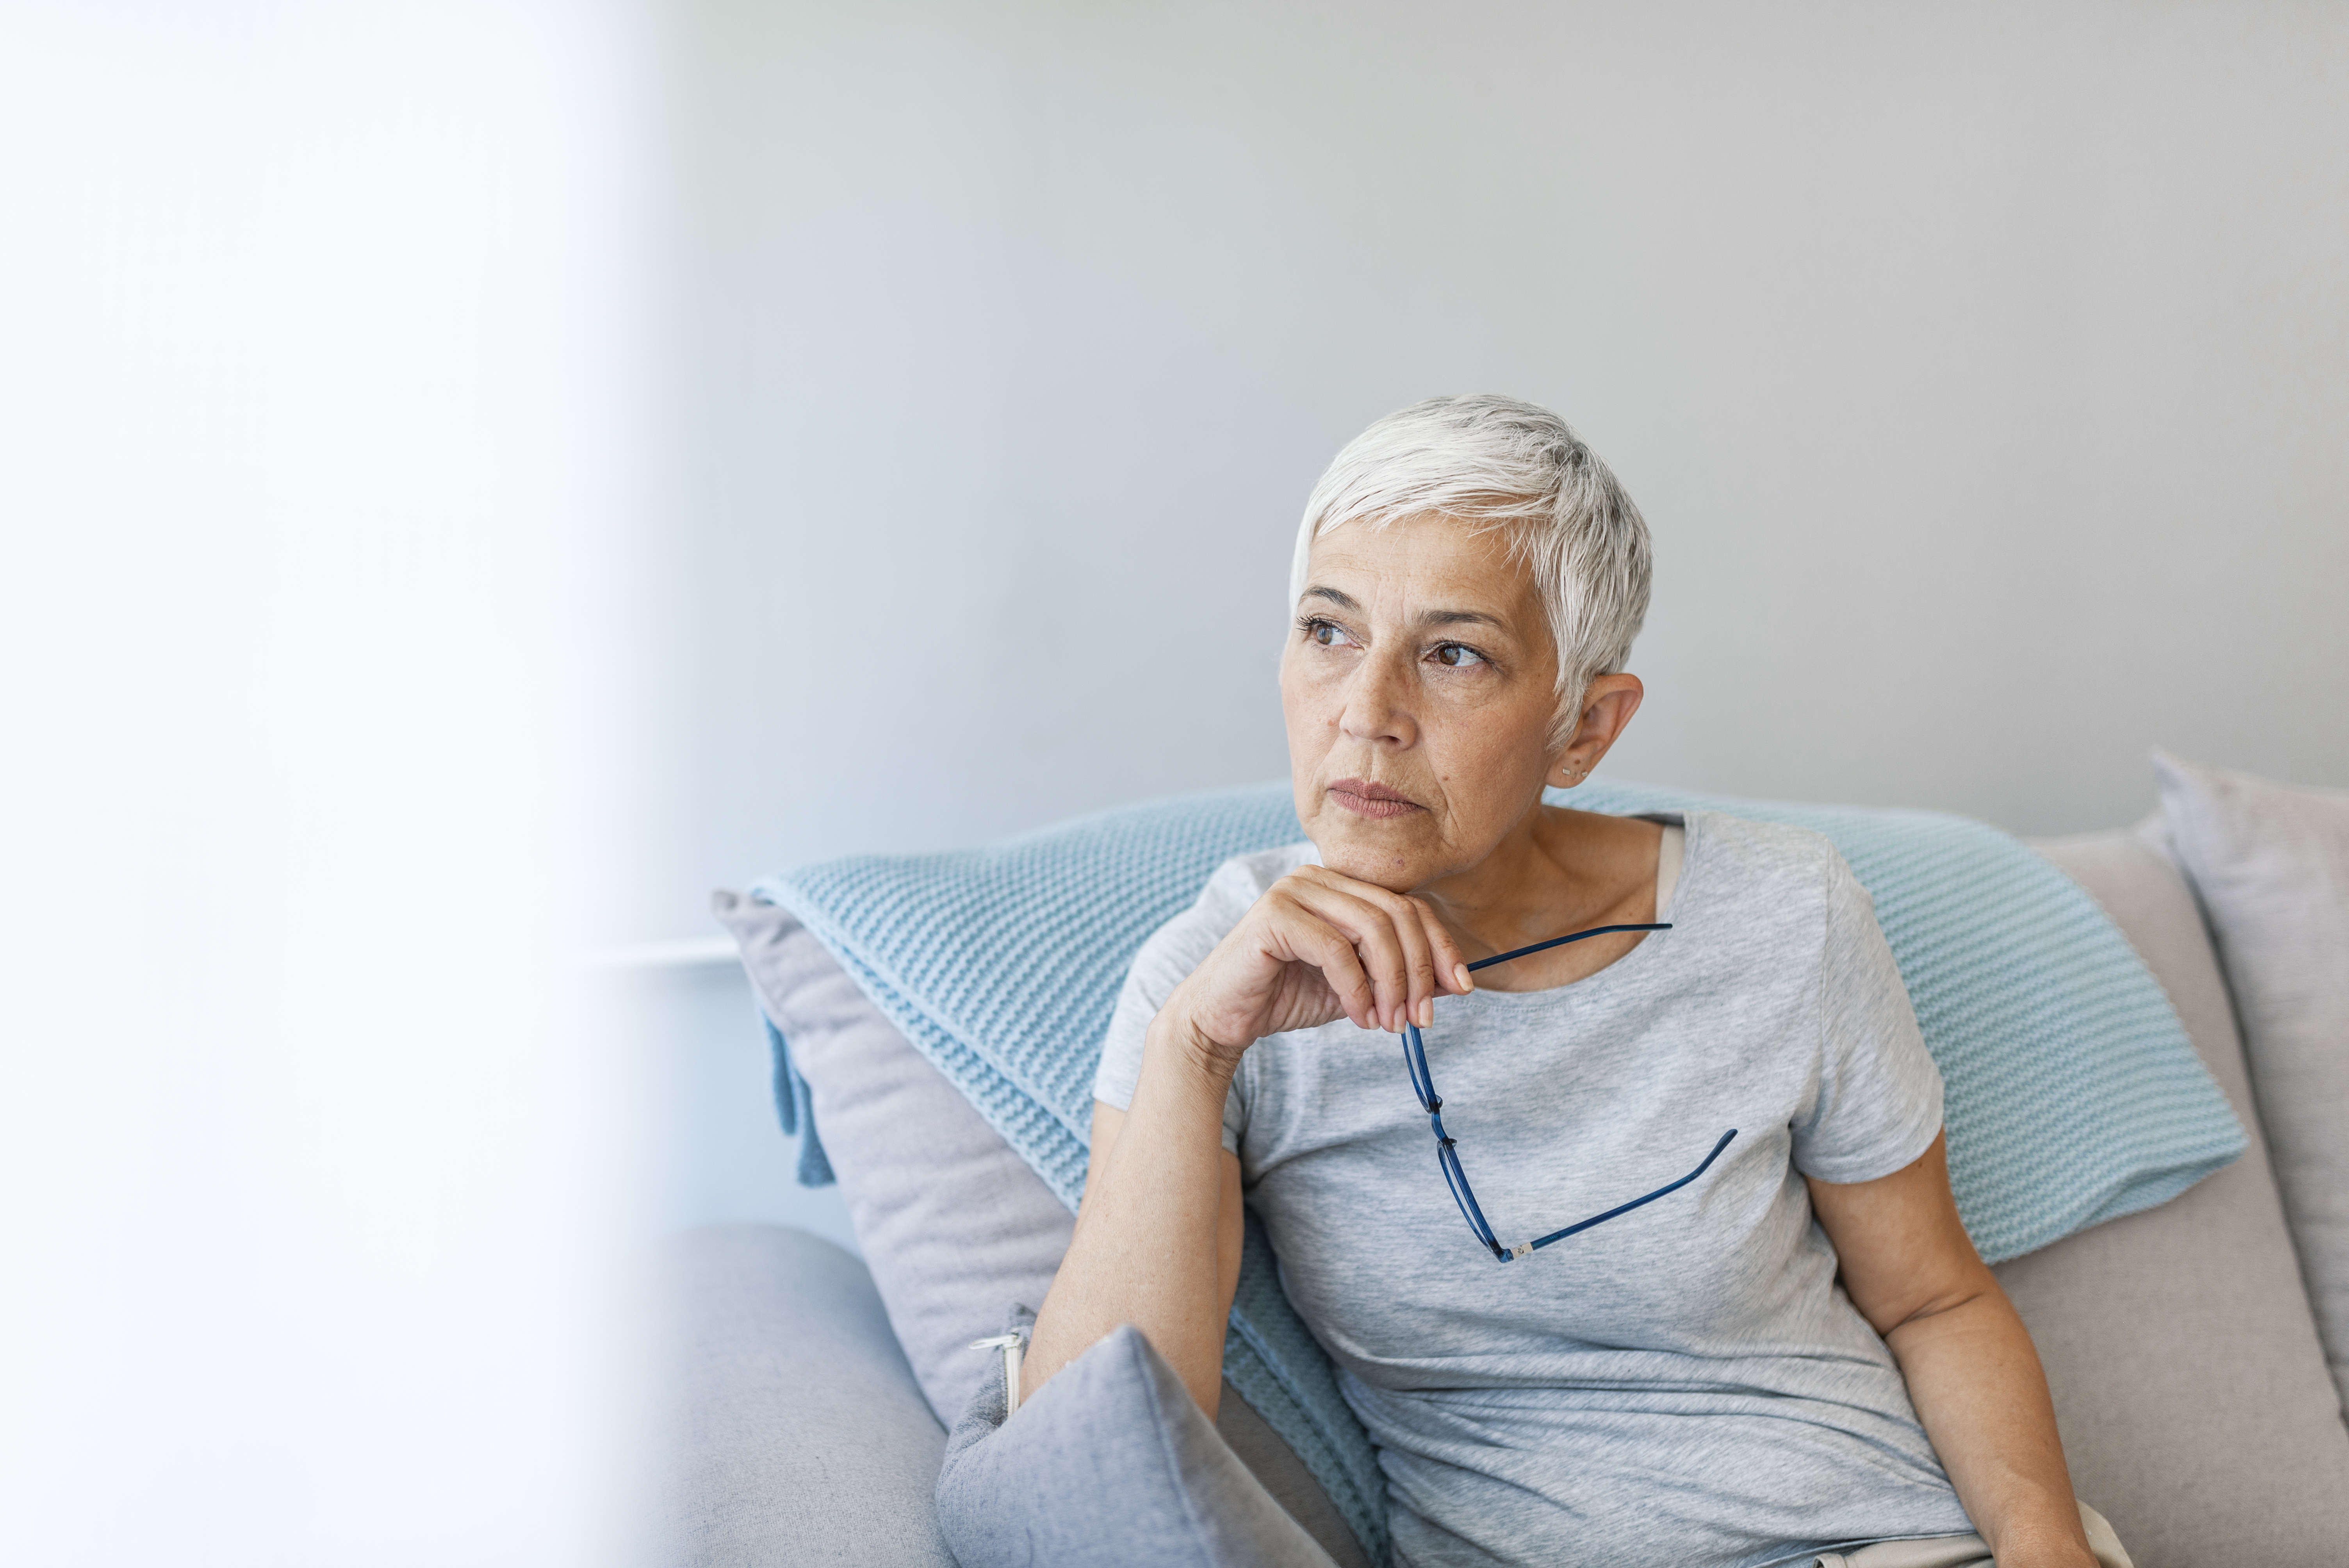 About 8 million Americans have dementia, and studies suggest that up to 30% of them develop psychosis.